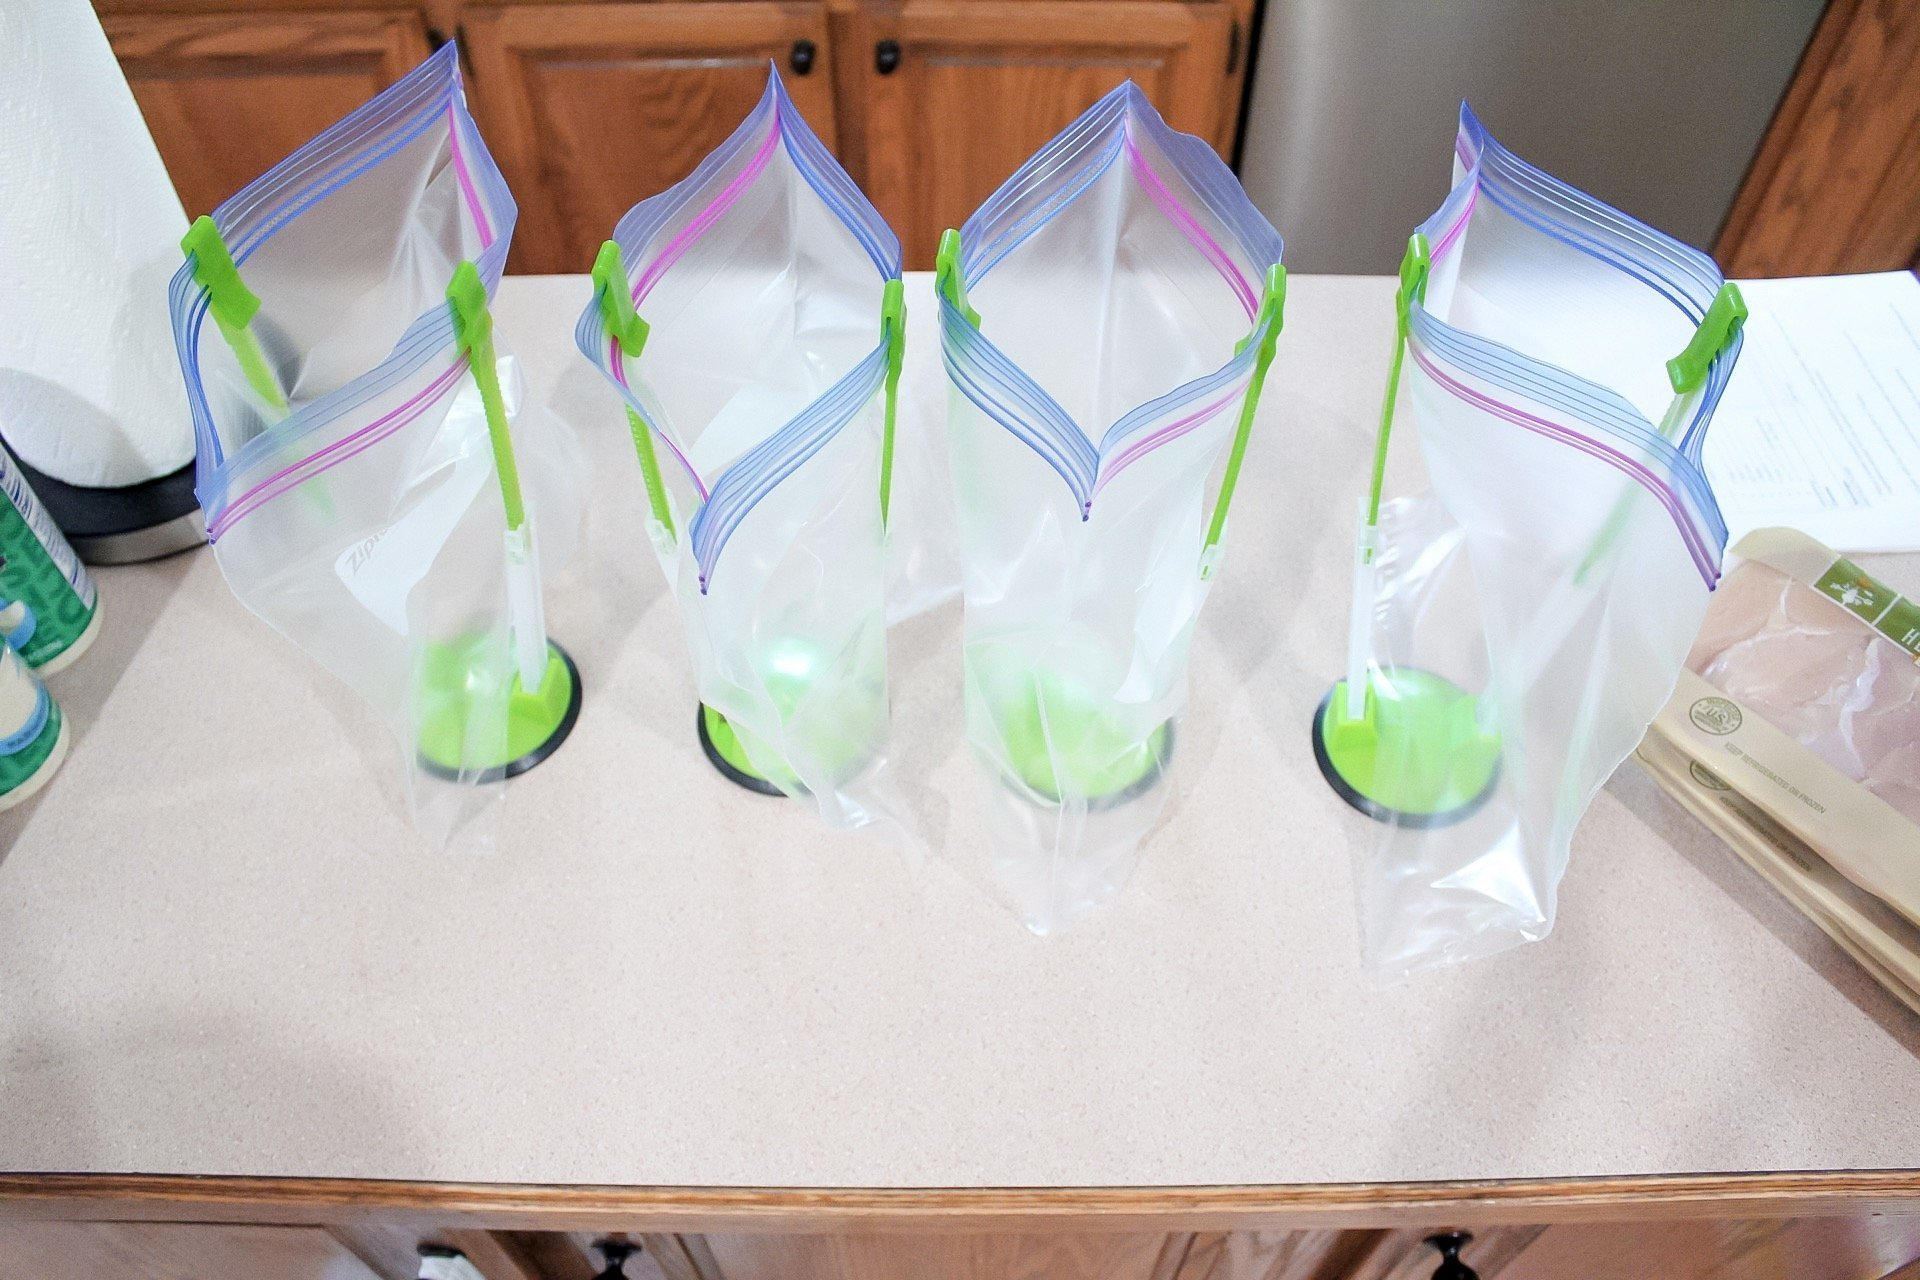 freezer meal prep baggy holders